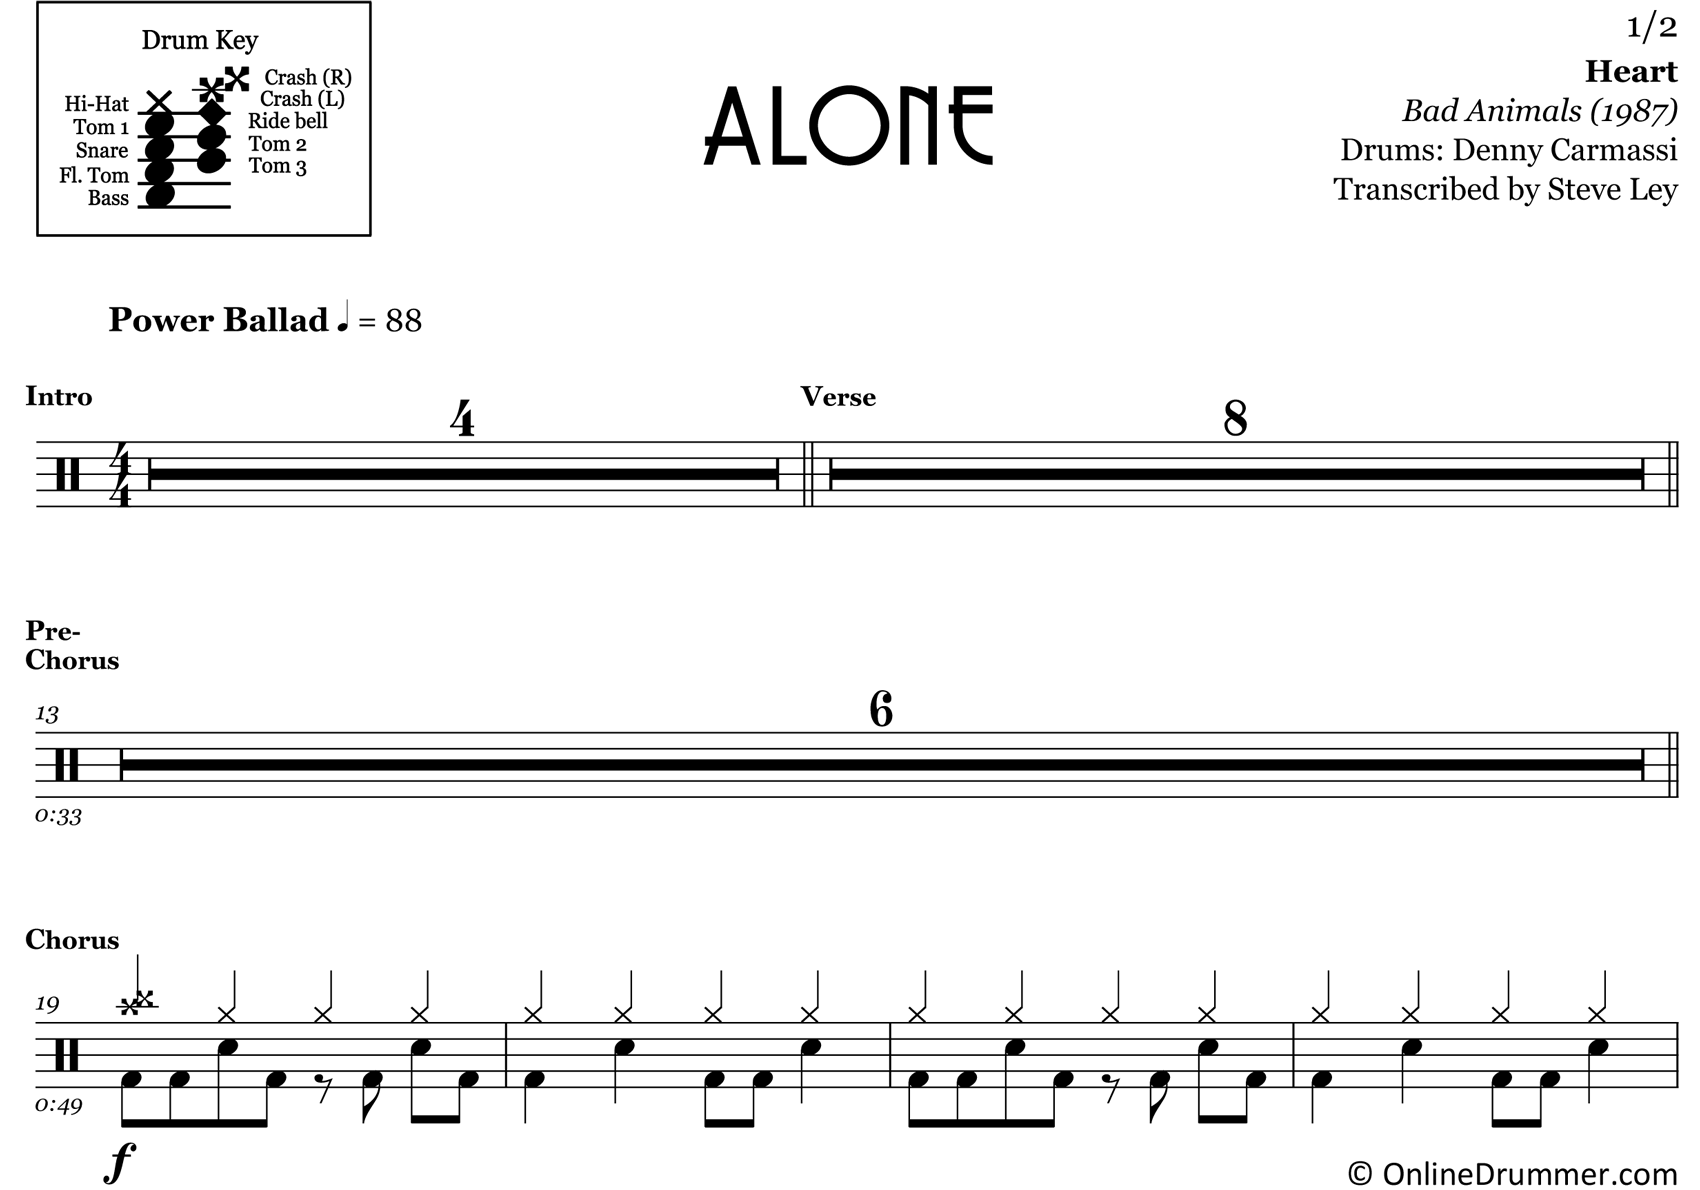 Alone - Heart - Drum Sheet Music